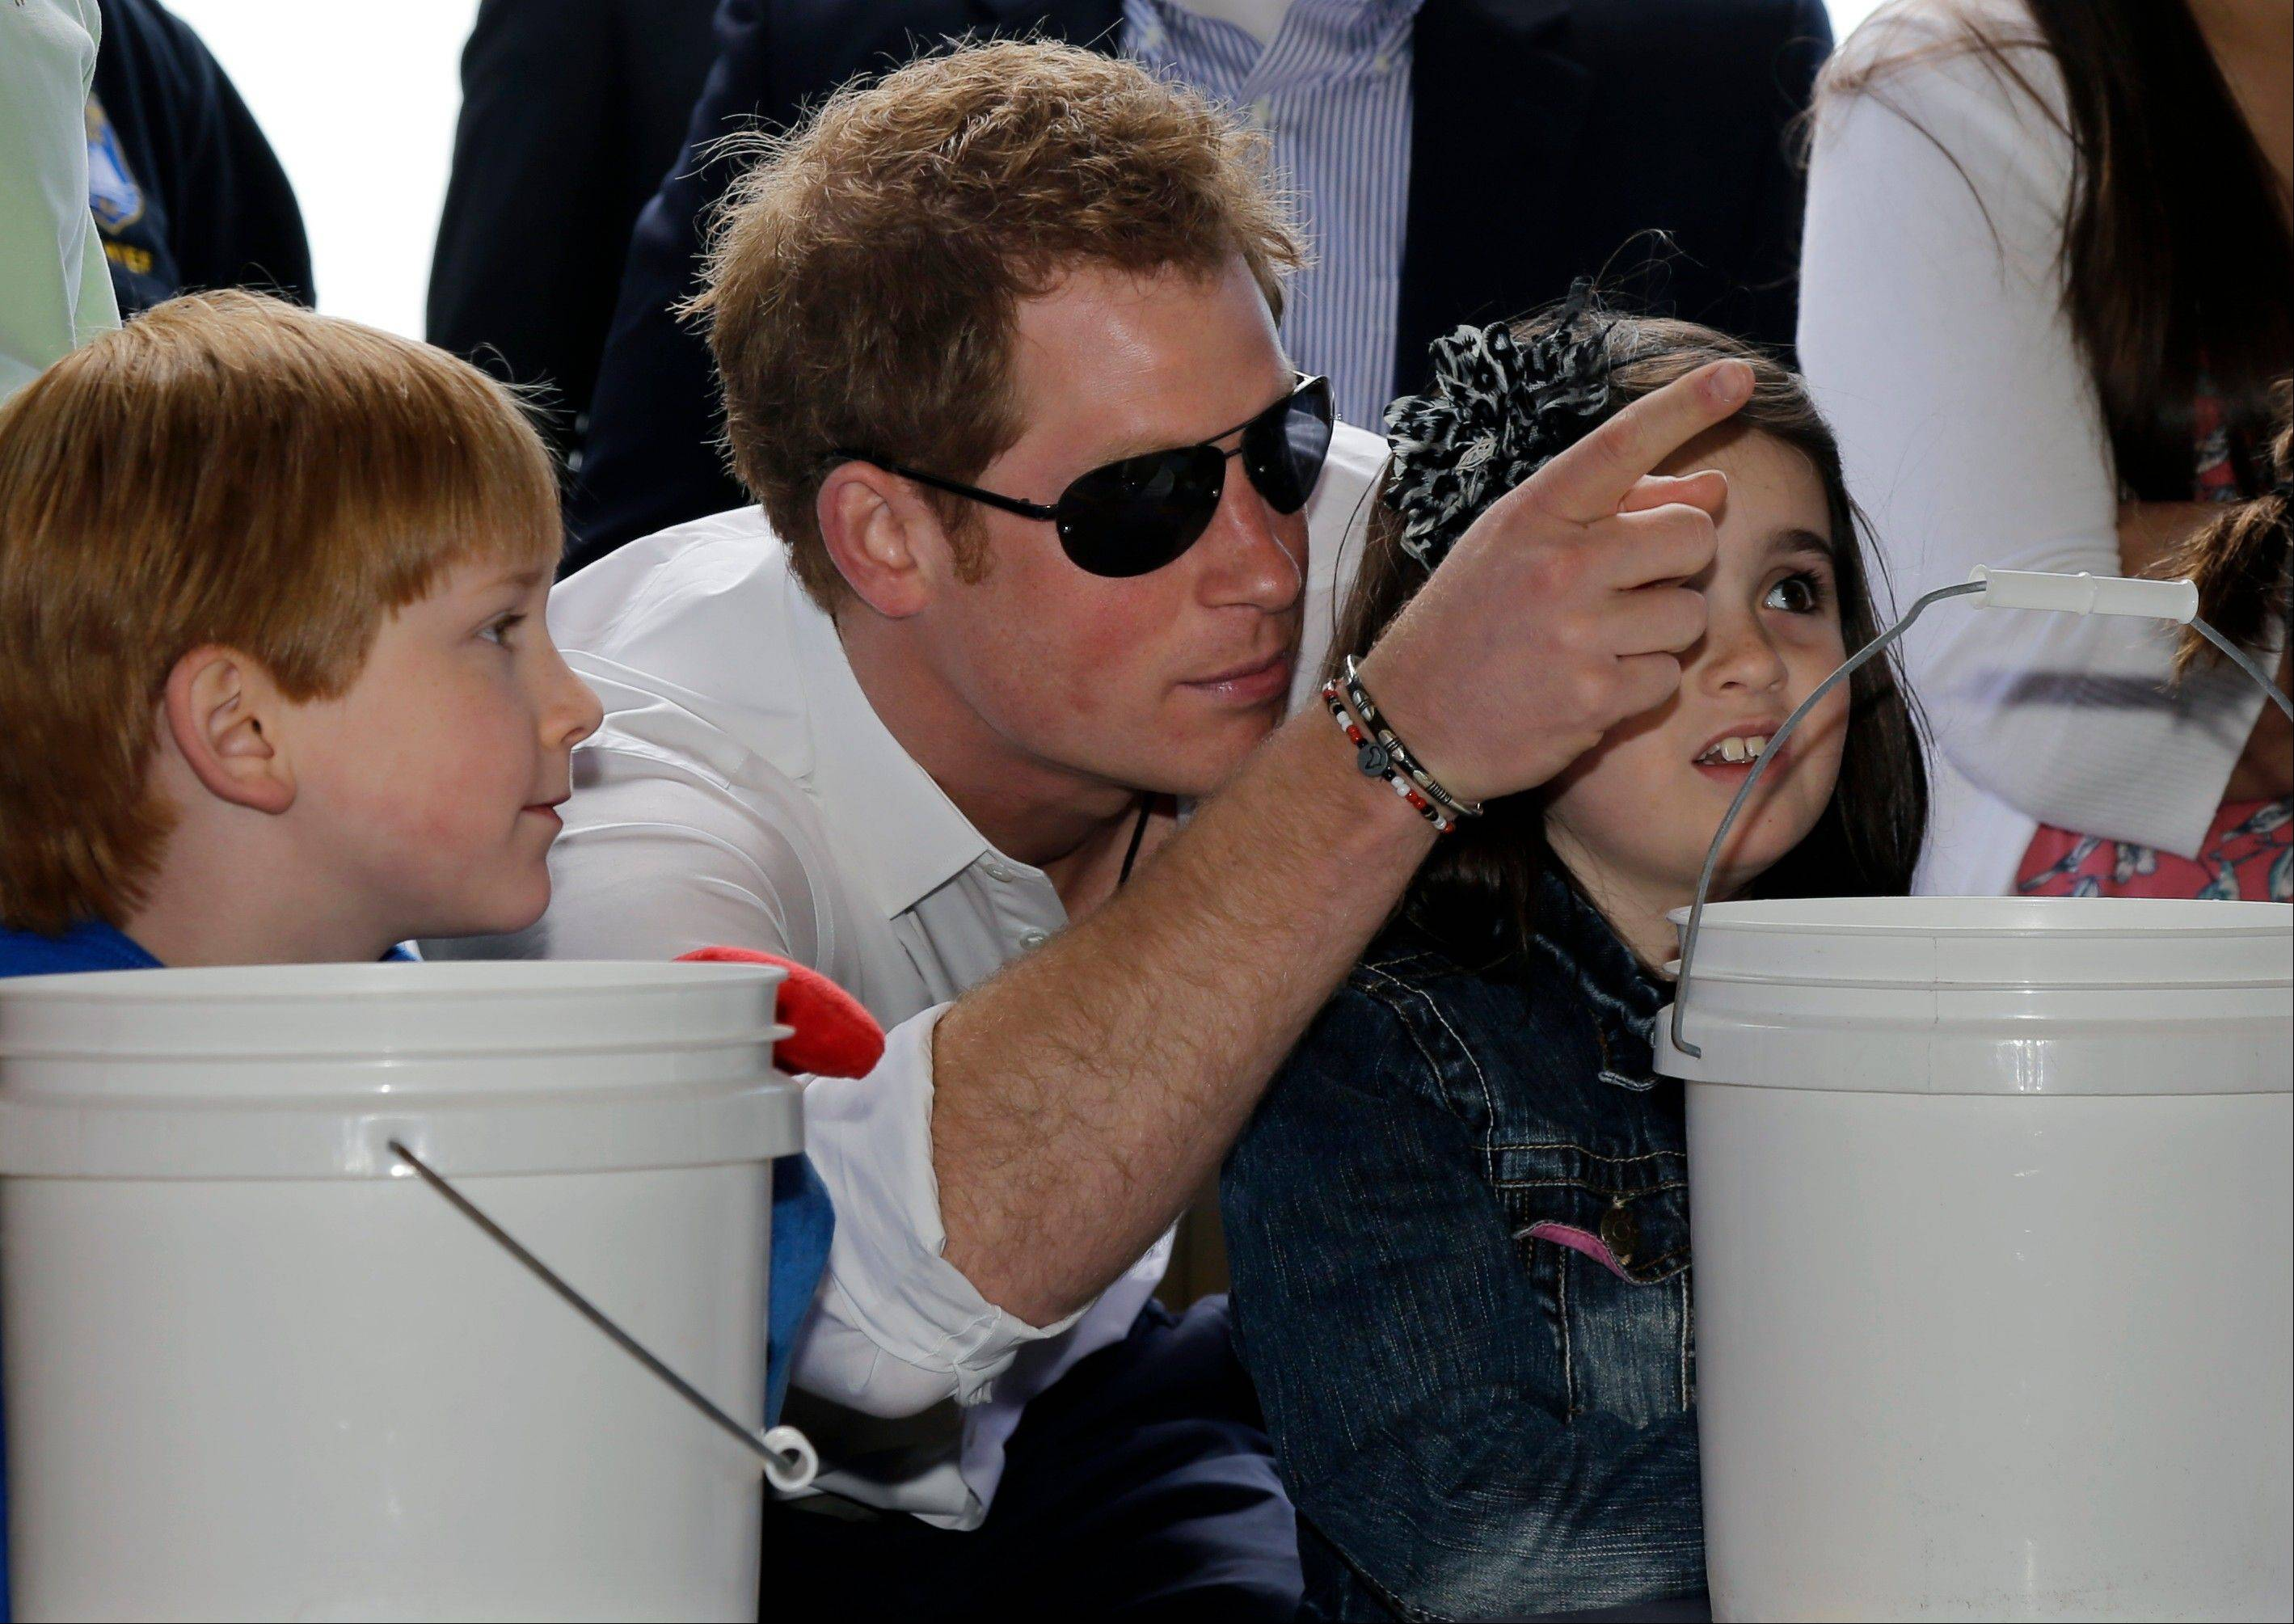 Michael Vanover, 7, left, looks on as Britain's Prince Harry helps Taylor Cirigliano, 11, right, pick a prize at a Ball Toss game on the boardwalk, while visiting the area hit by Superstorm Sandy, Tuesday, May 14, 2013, in Seaside Heights, N.J.